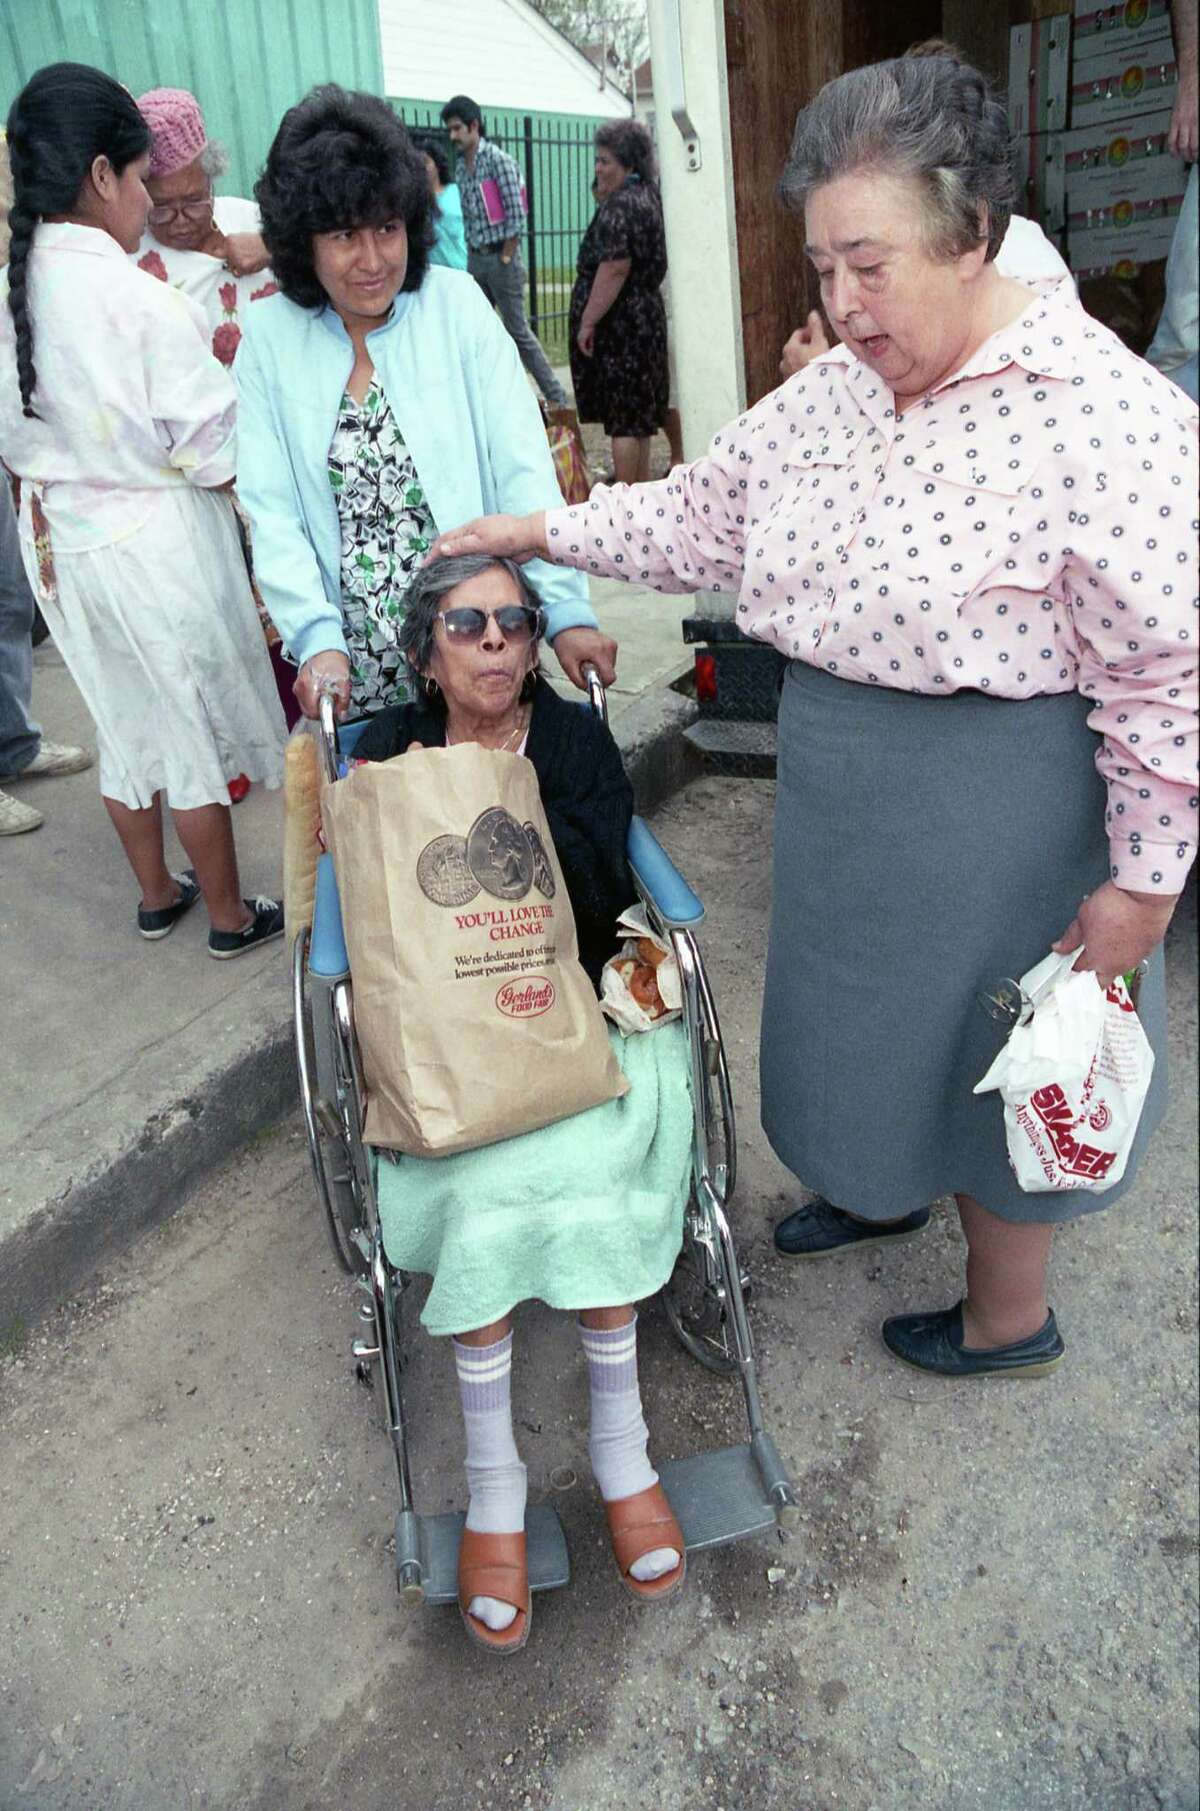 Mildred McWhorter, assisted by Carmen Santillan. extends a comforting hand to Rosa Martinez, in wheelchair, after Martinez received a donated bag of groceries from the Fletcher Mission Center. The center purchases food from the Houston Area Food Bank, which is supported by grocers, including Gerland's.